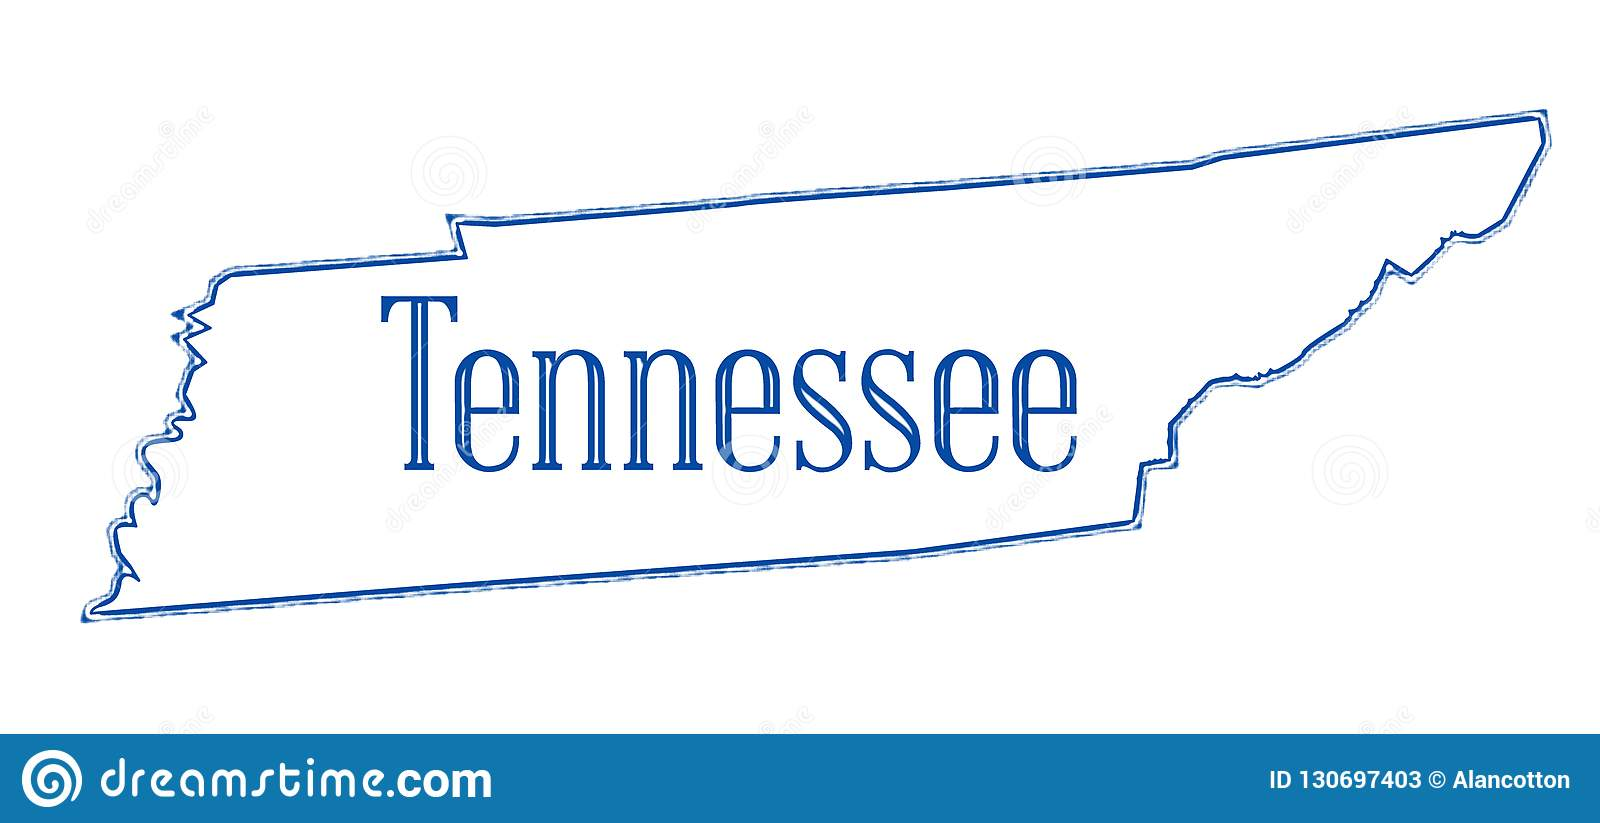 Tennessee State Outline Map Stock Illustration - Illustration of ...